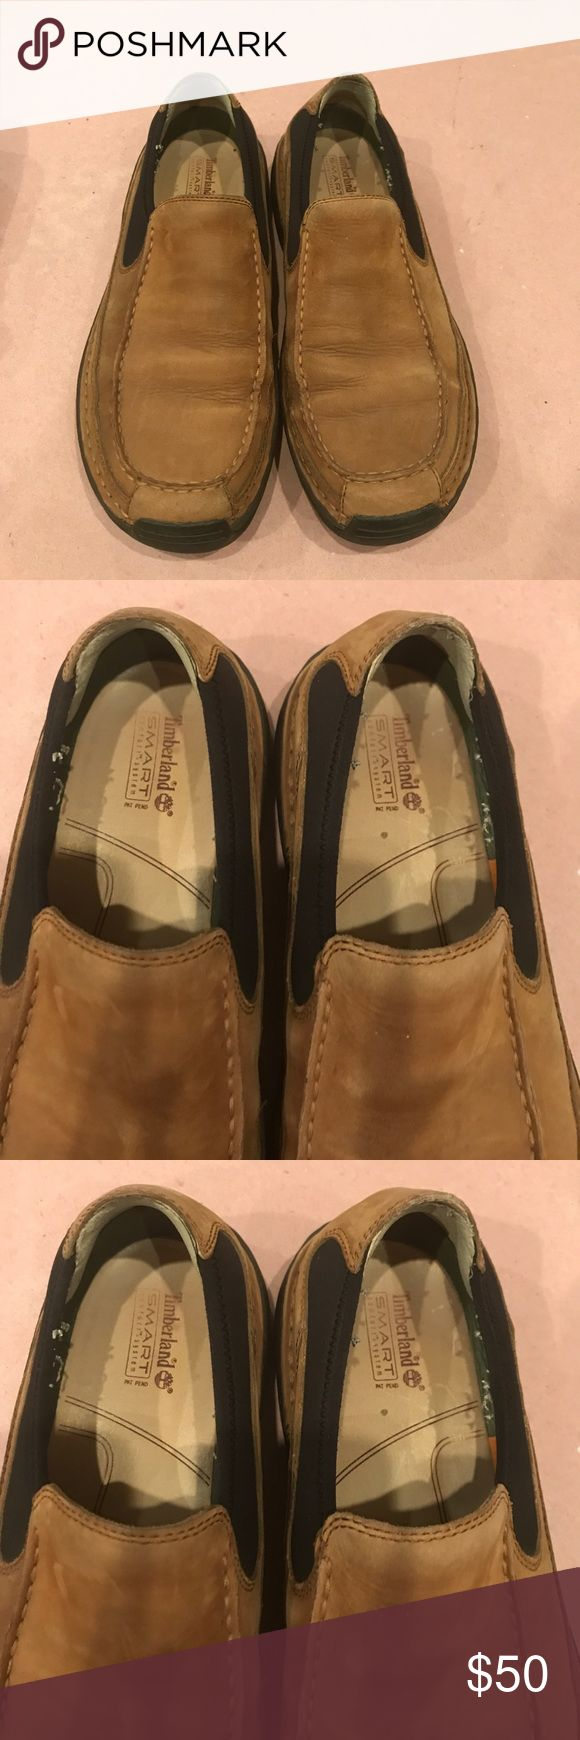 Sz 11 men's timberland Slip on looks new Timberland Shoes Loafers & Slip-Ons